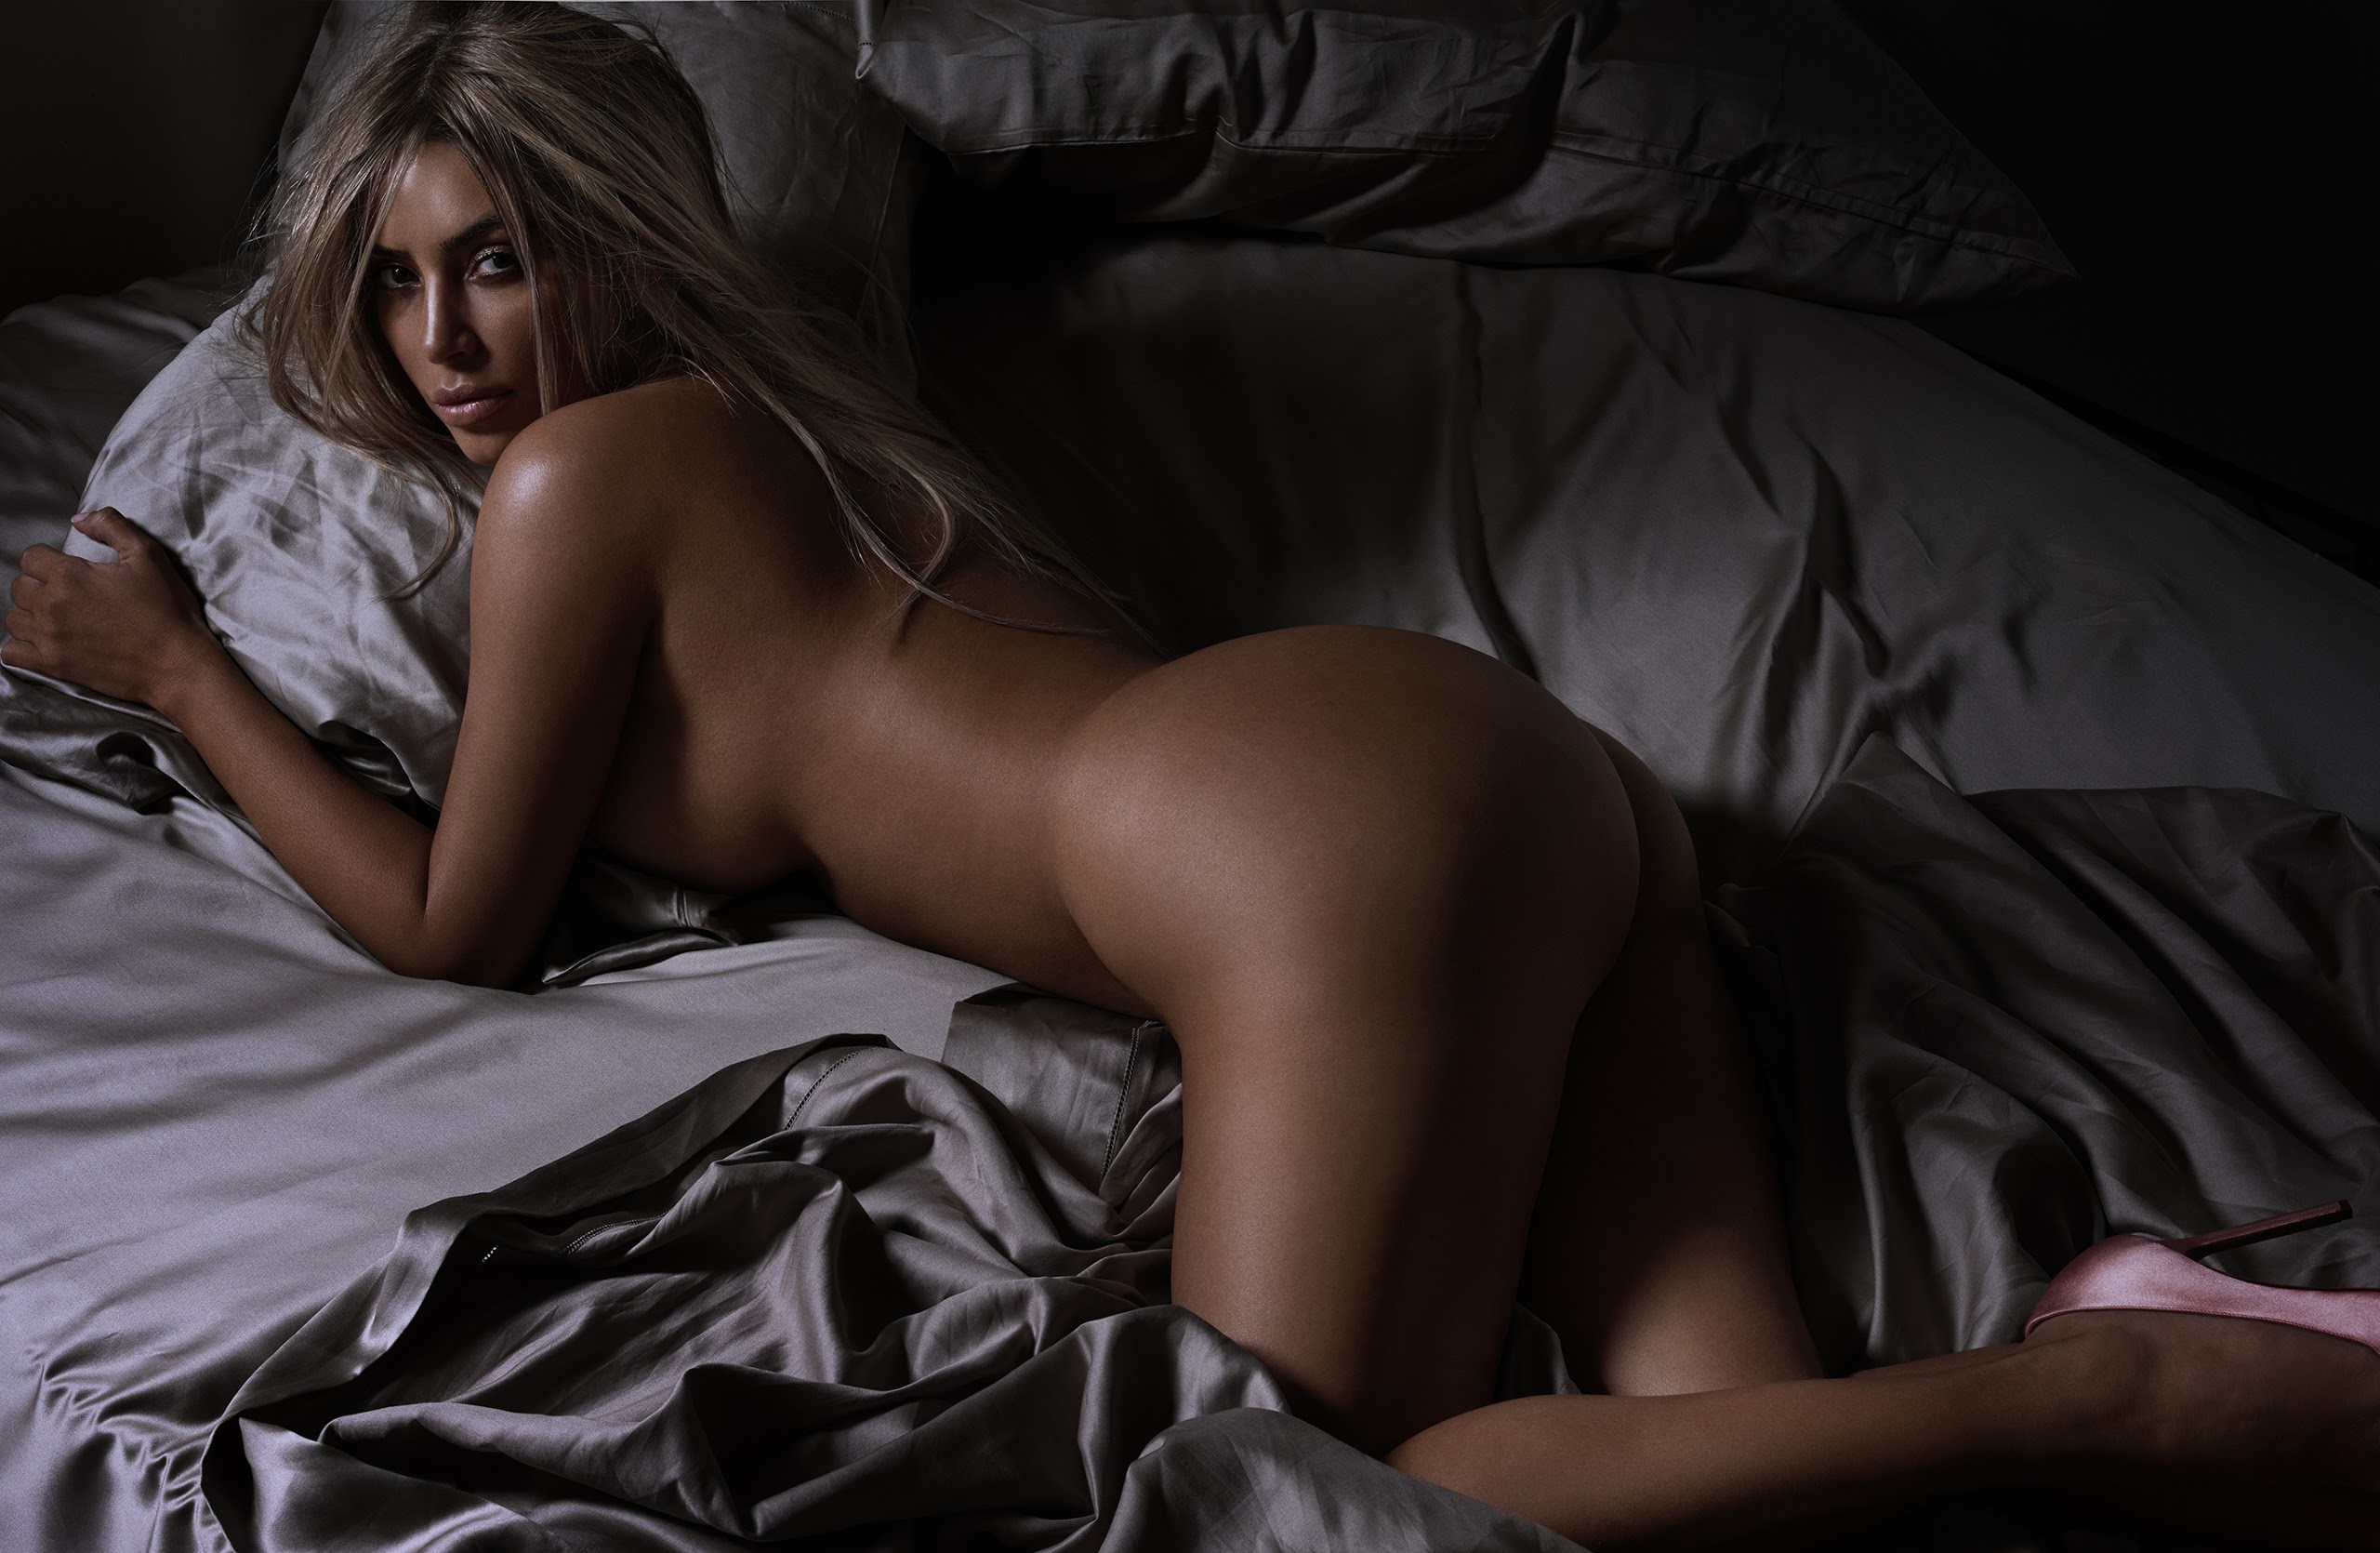 Naked girl butt action